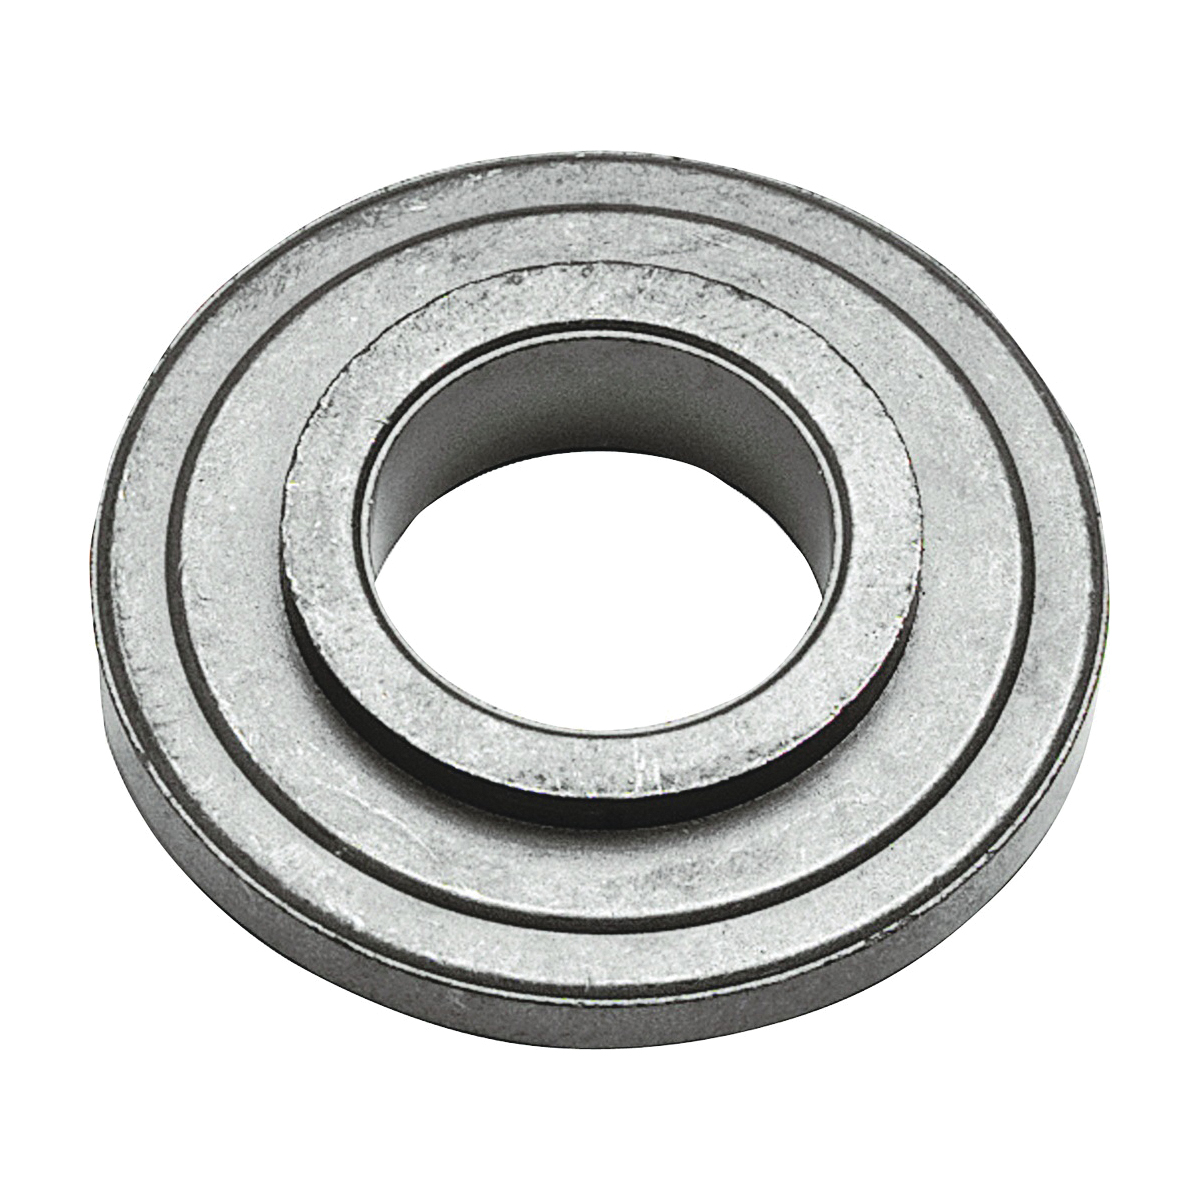 Picture of DeWALT DW4706 Spindle Adapter